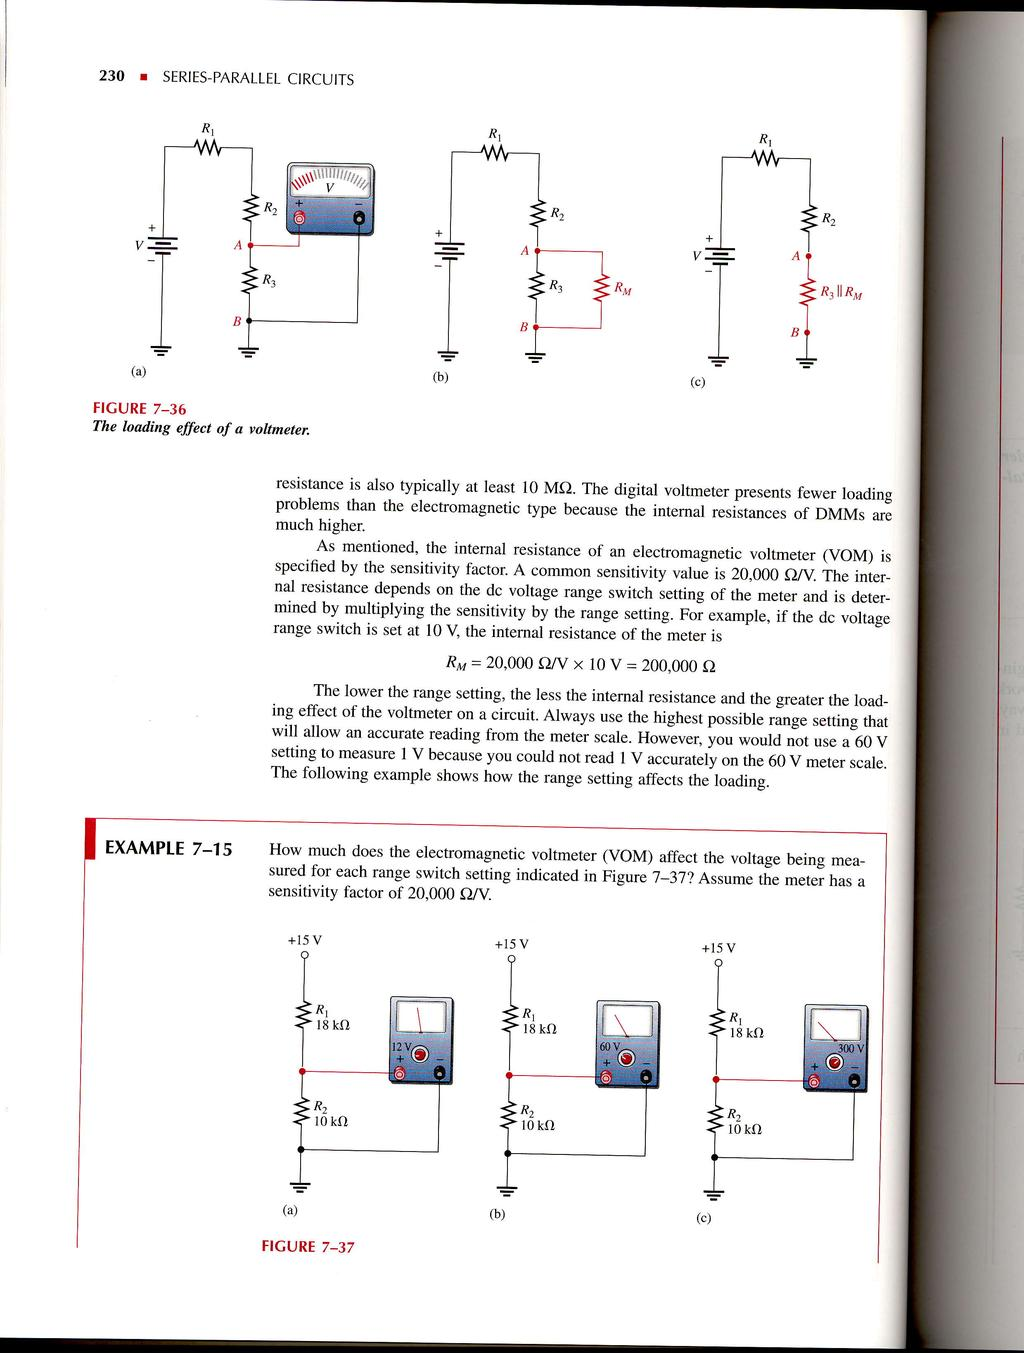 Seriesparallel Circuits Pdf Related Image With Digital Voltmeter Circuit 230 I Sertes Parallel Rl Al Figure 7 36 The Loading Effect